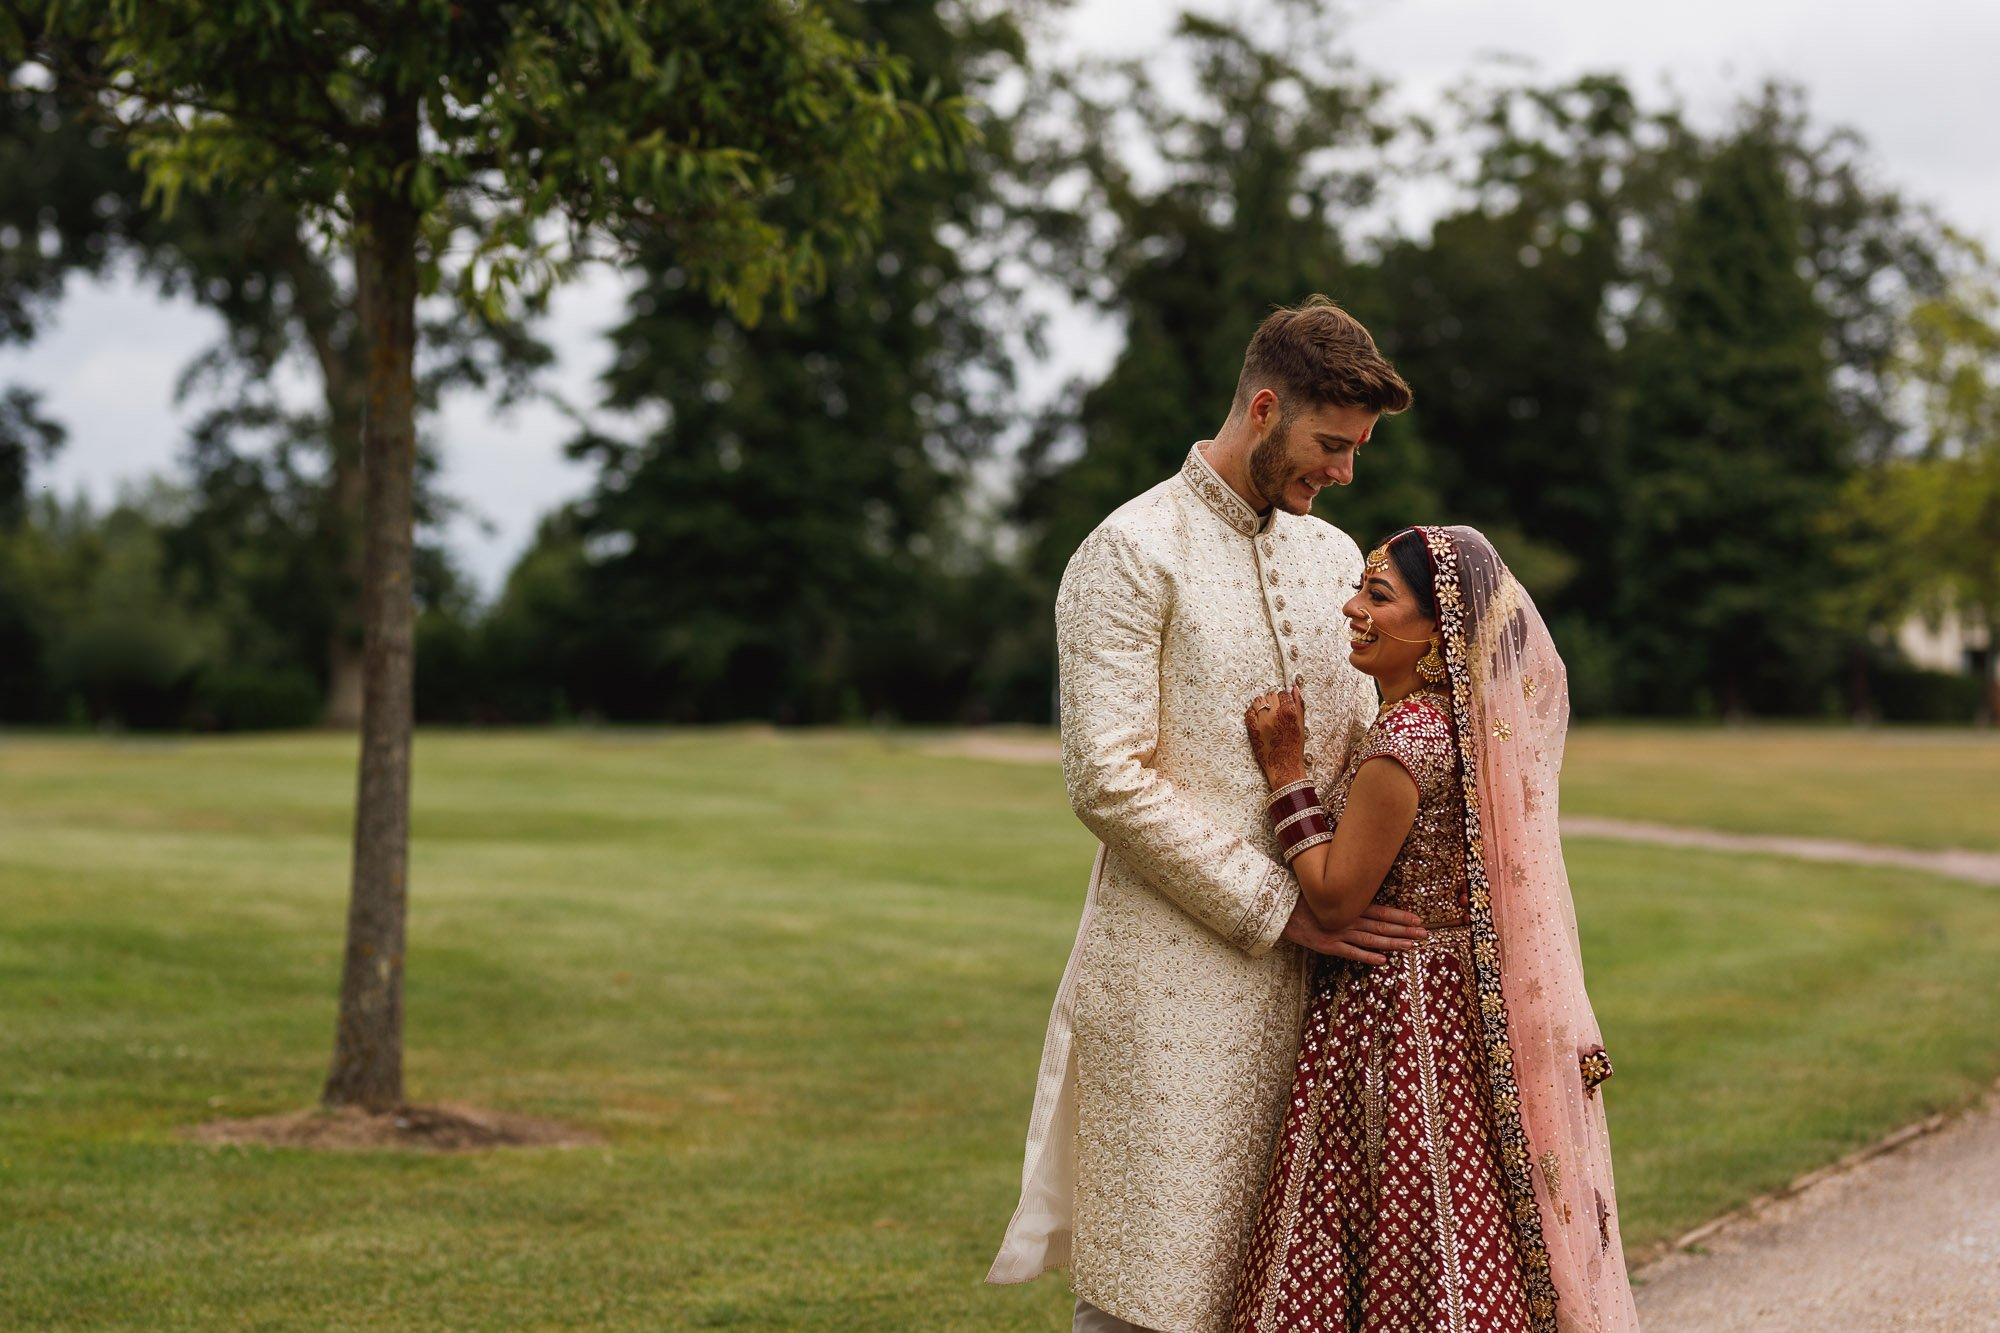 De Vere Wokefield Estate, Asian wedding photographer, bride and groom portrait